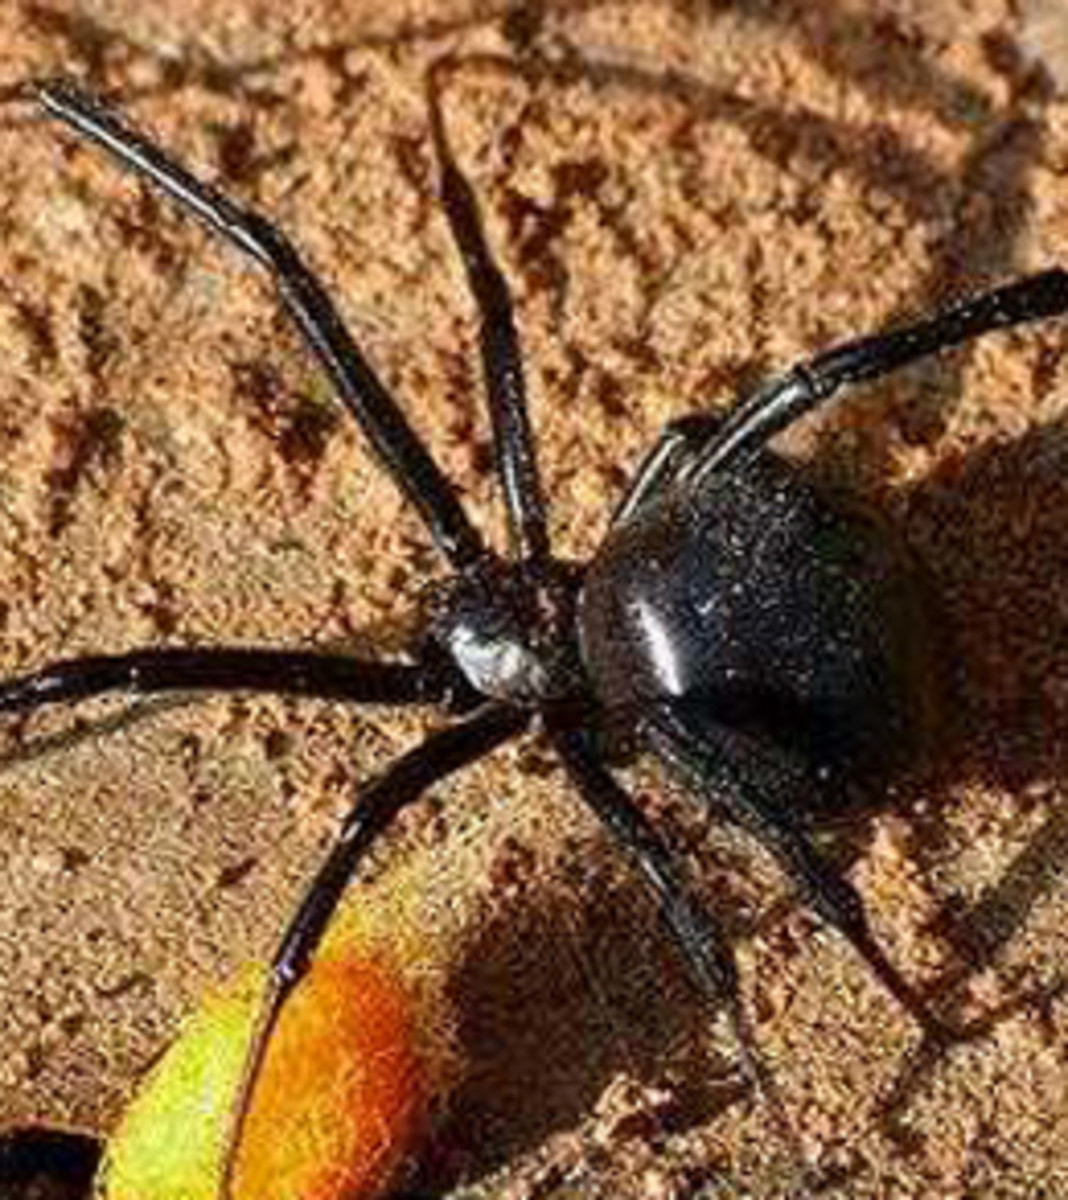 One bite from a poisonous spider can leave you paralyzed for days! And as far as the jungle rule is concern, being immobile makes you a very vulnerable target.